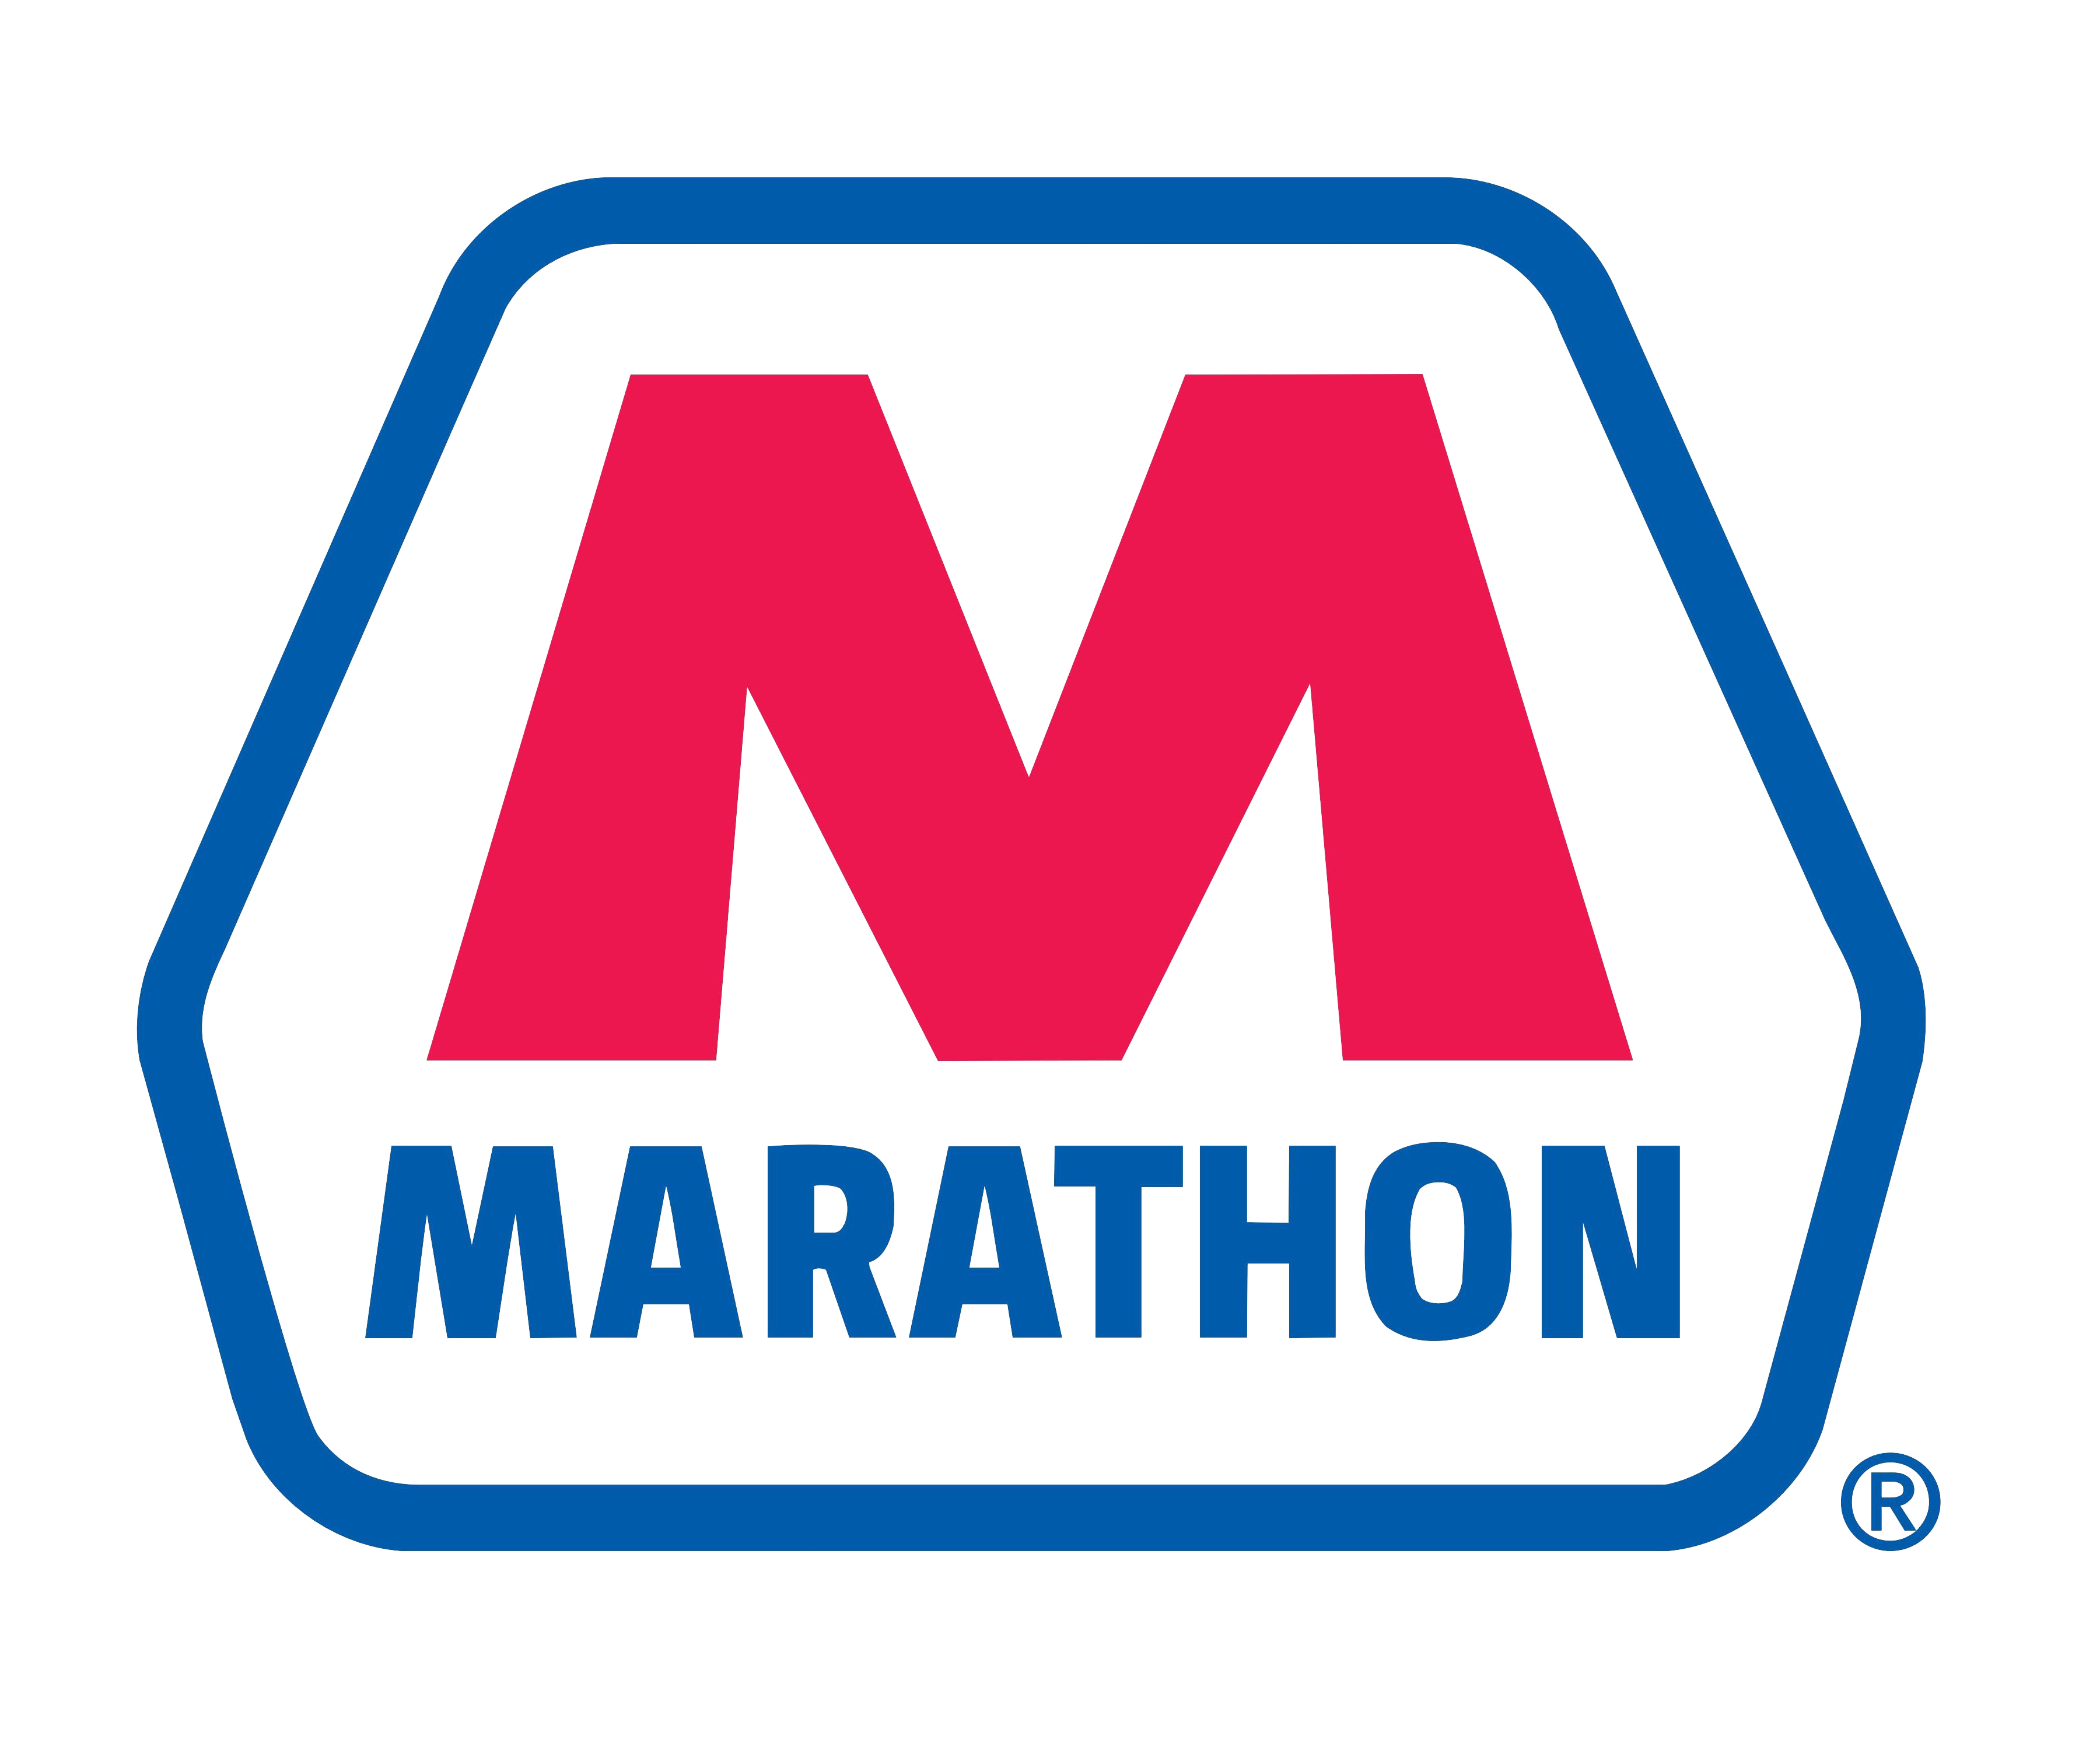 finance marathon logo